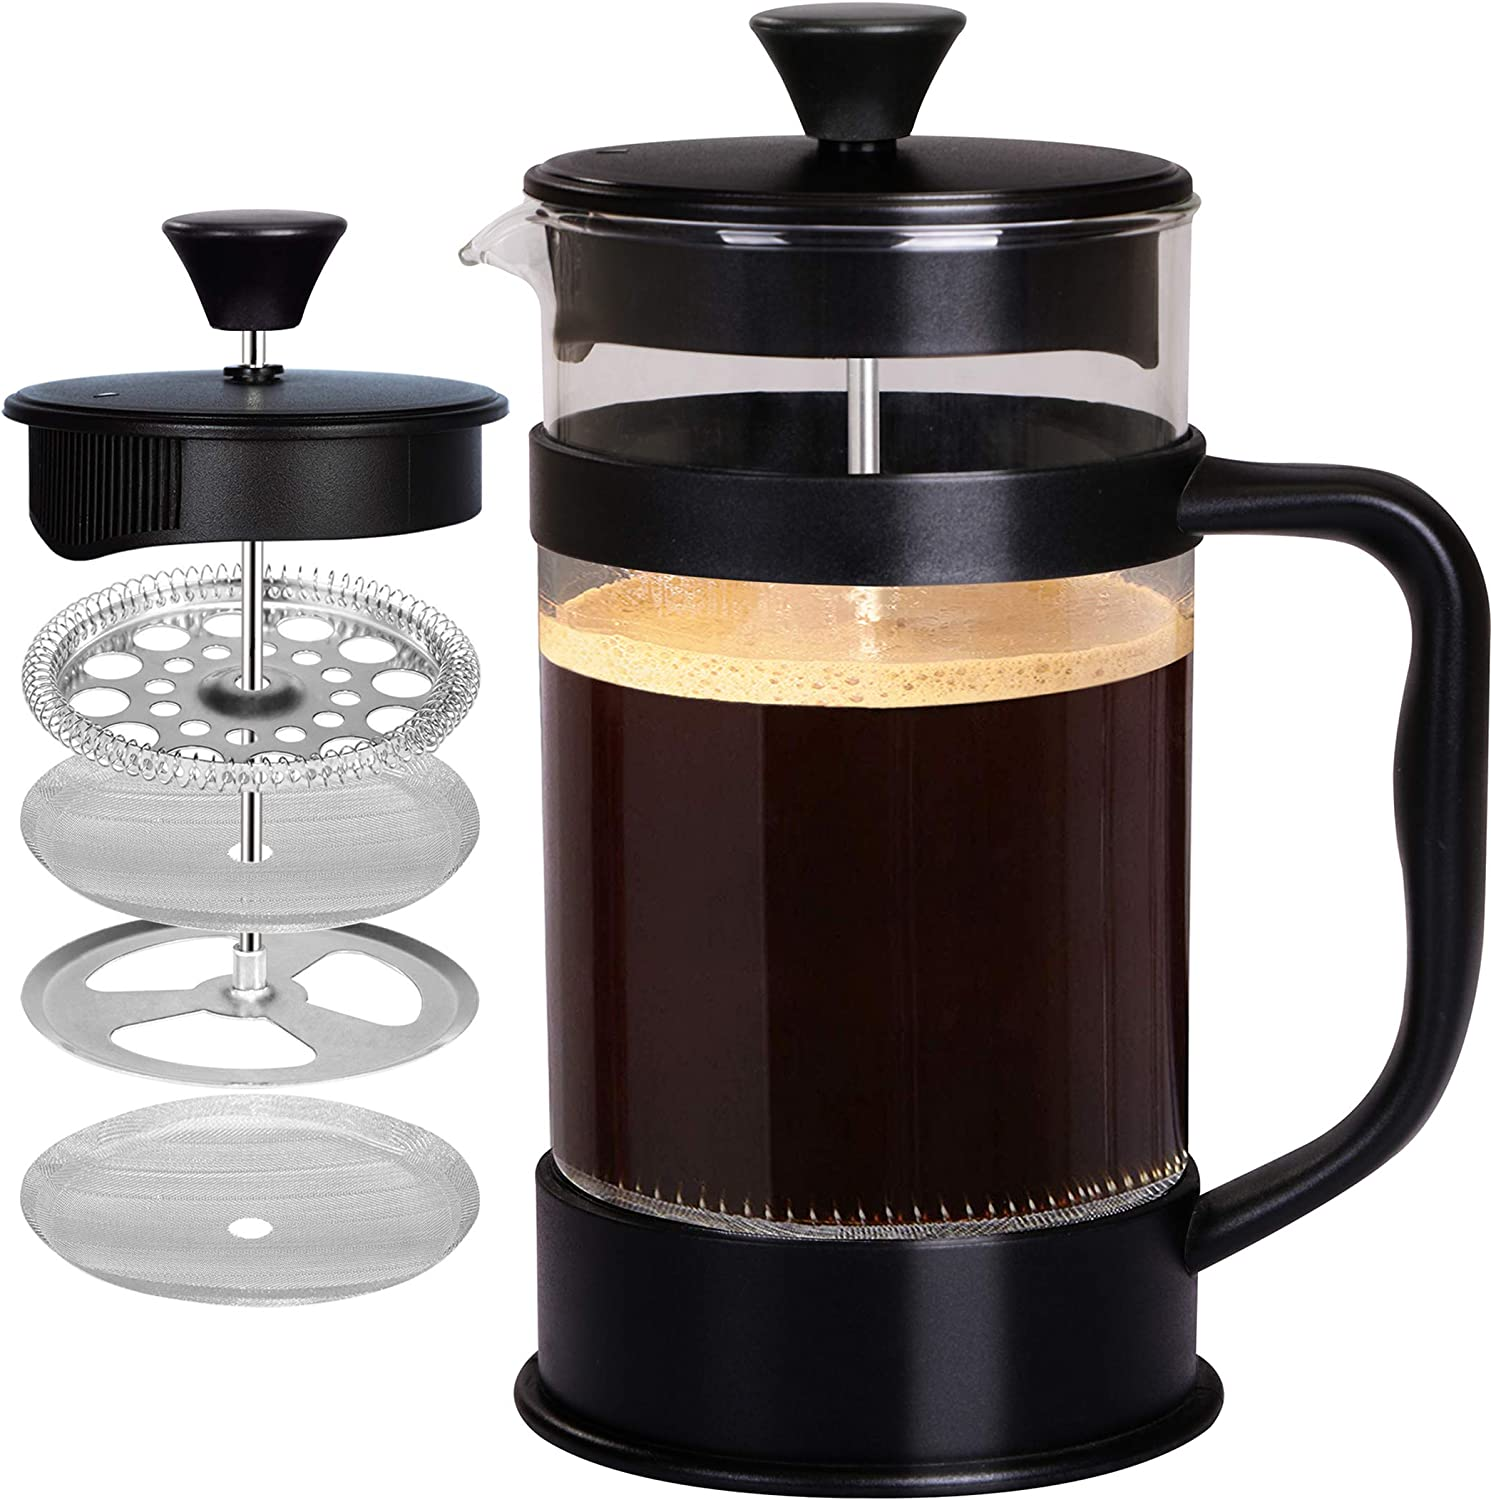 Stainless Steel Cafetiere French Coffee Filter Maker Press Plunger Jug Tea Spoon